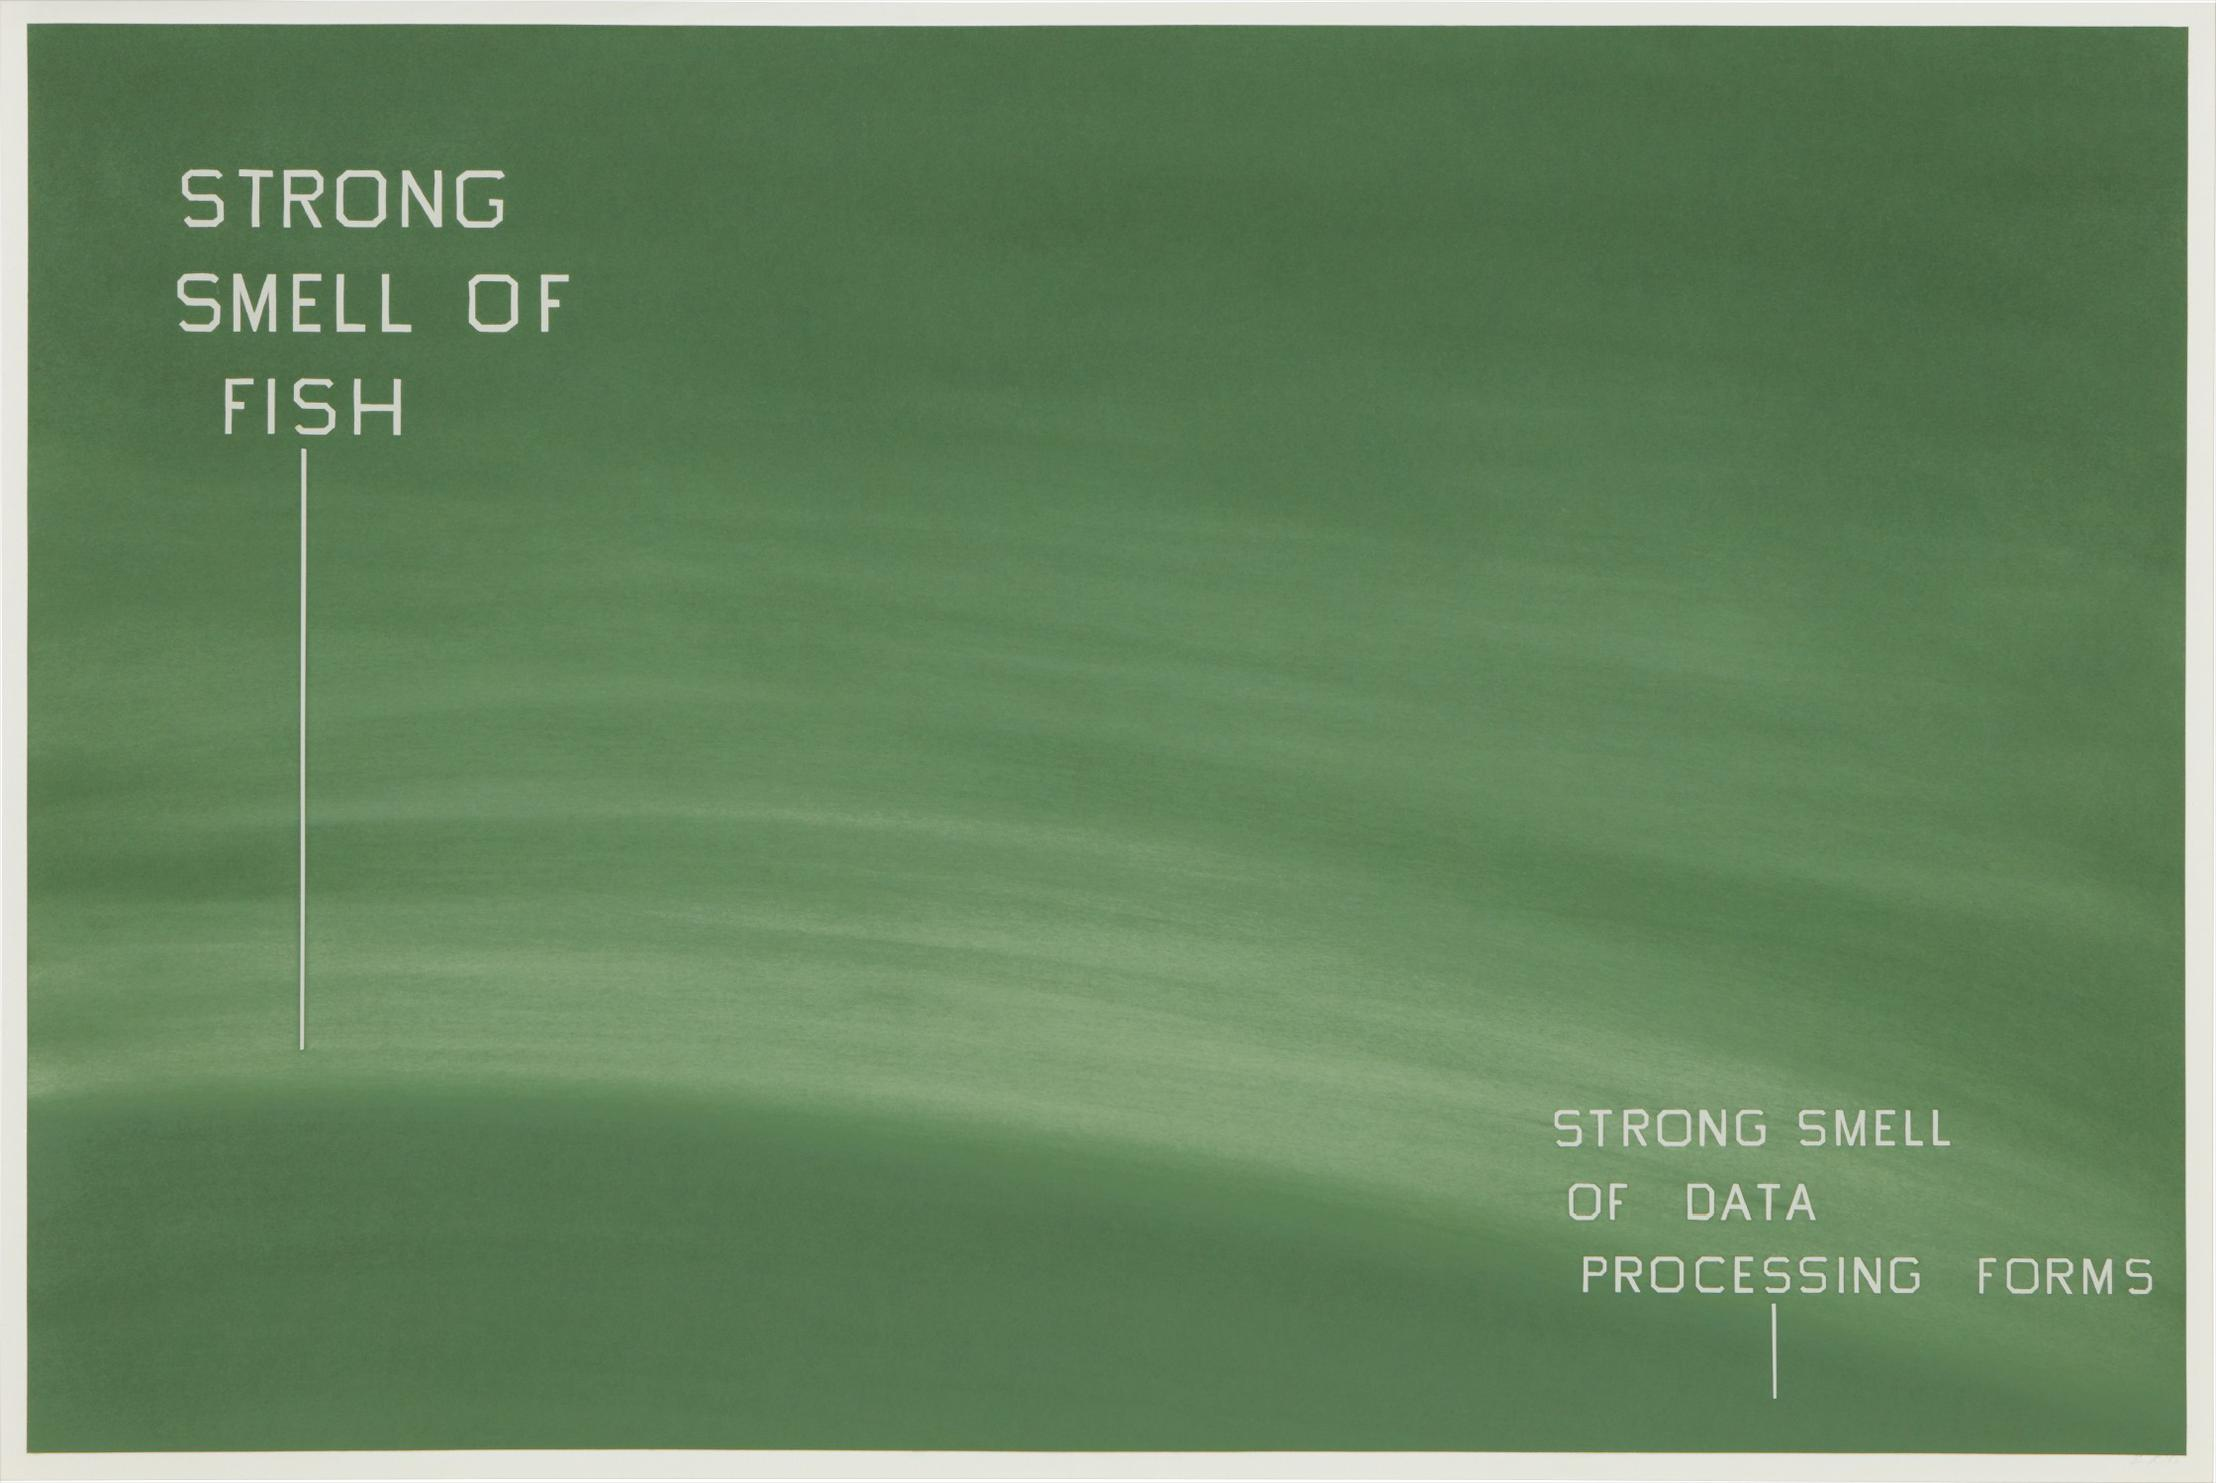 Ed Ruscha-Strong Smell Of Fish-Strong Smell Of Data Processing Forms-1982